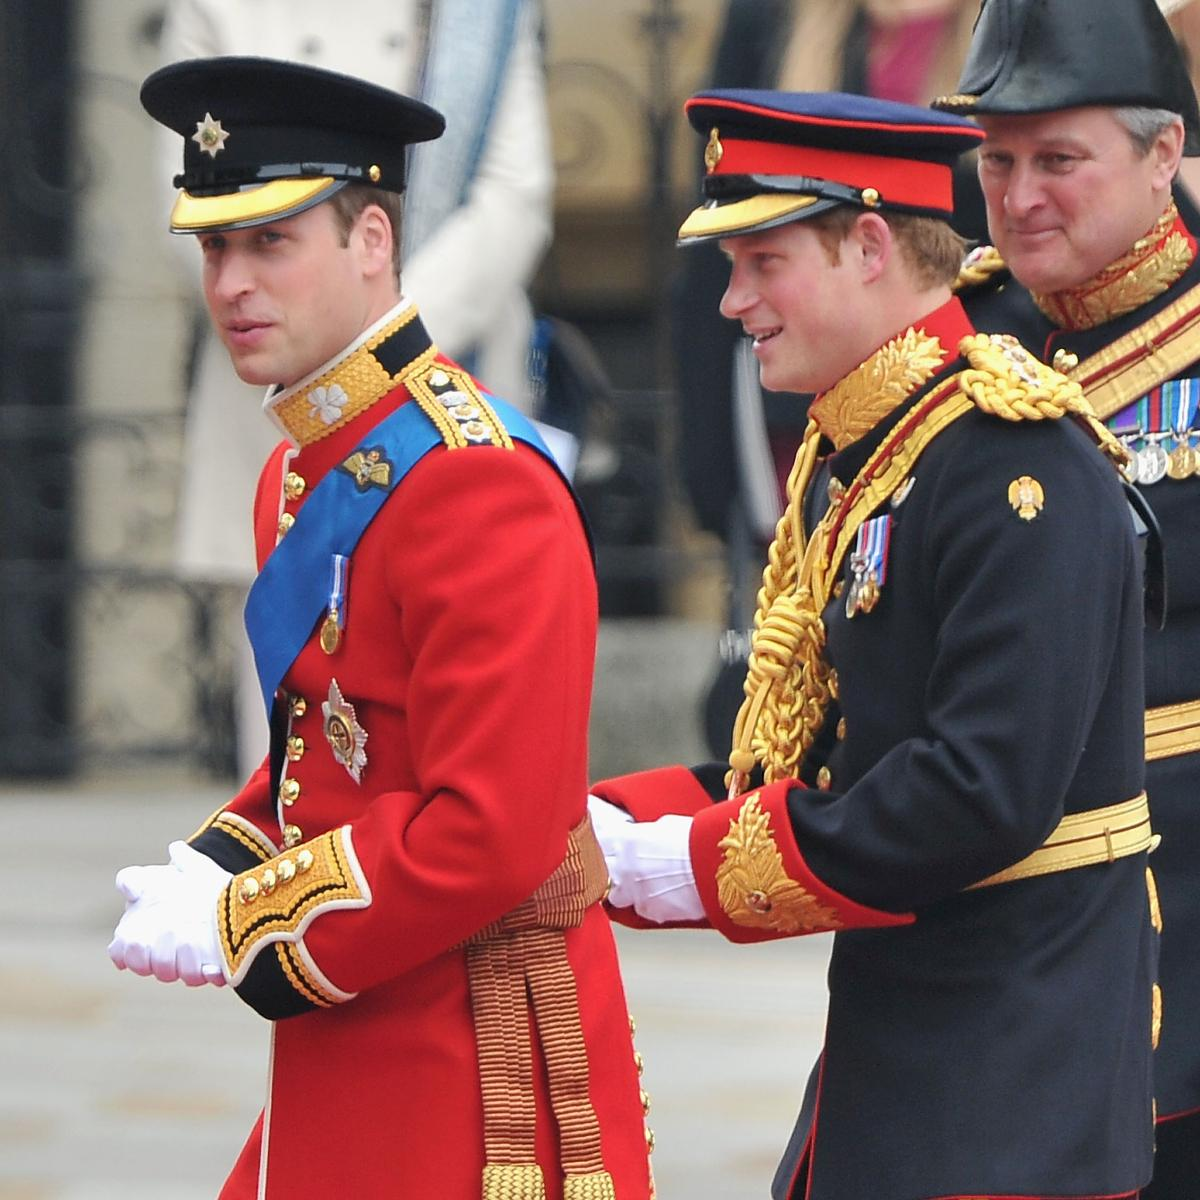 Prince William and Prince Harry were one another's best man at their weddings